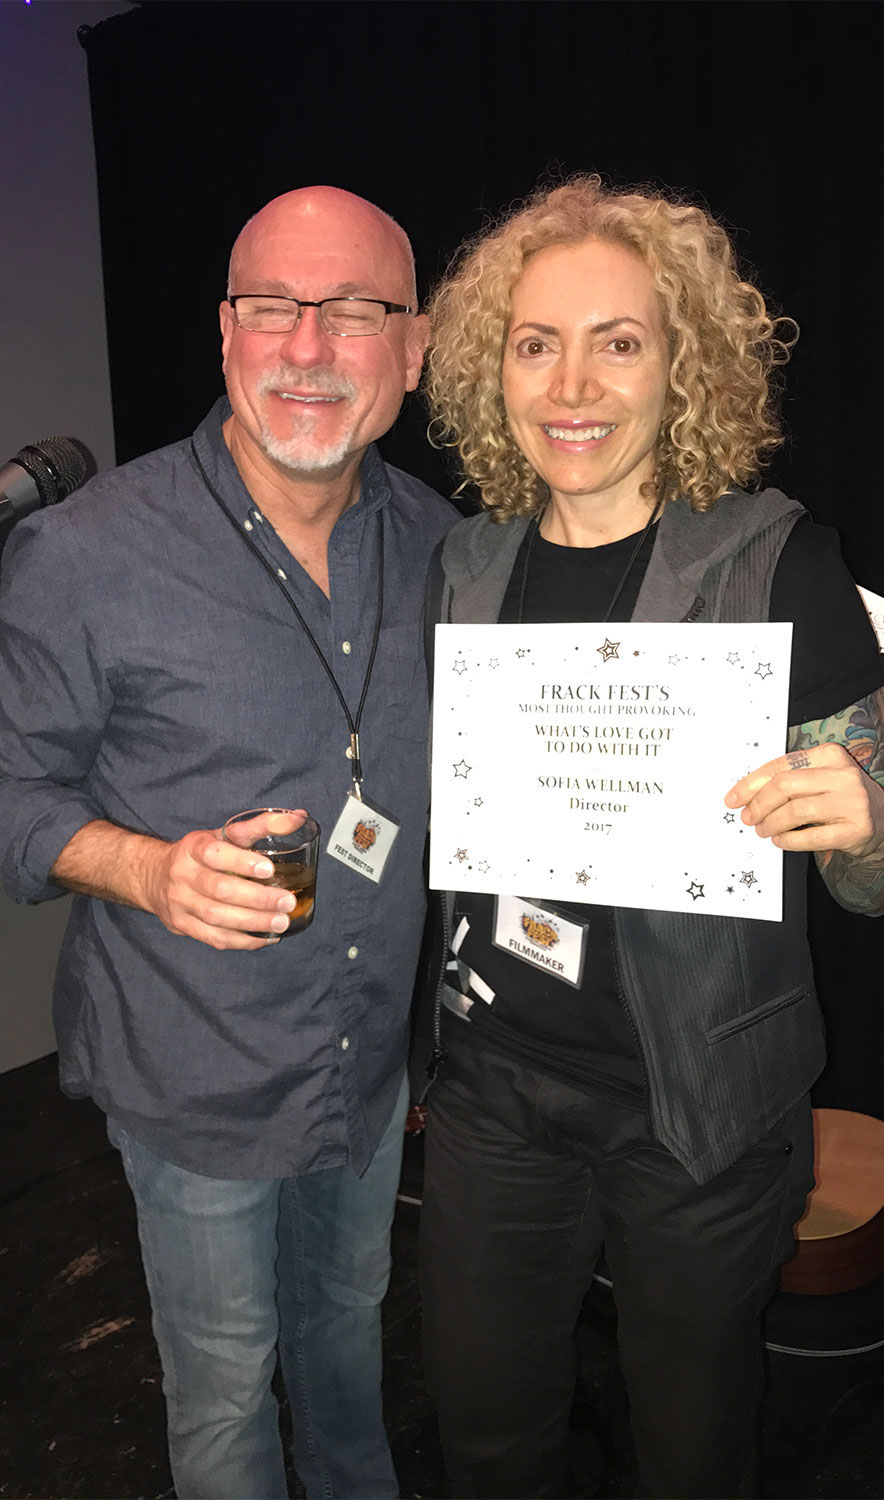 Sofia Wellman -Won Most Thought Provoking Documentary Film - Frack Fest - 2017 - Whats Love Got To Do With It - Film by Sofia Wellman